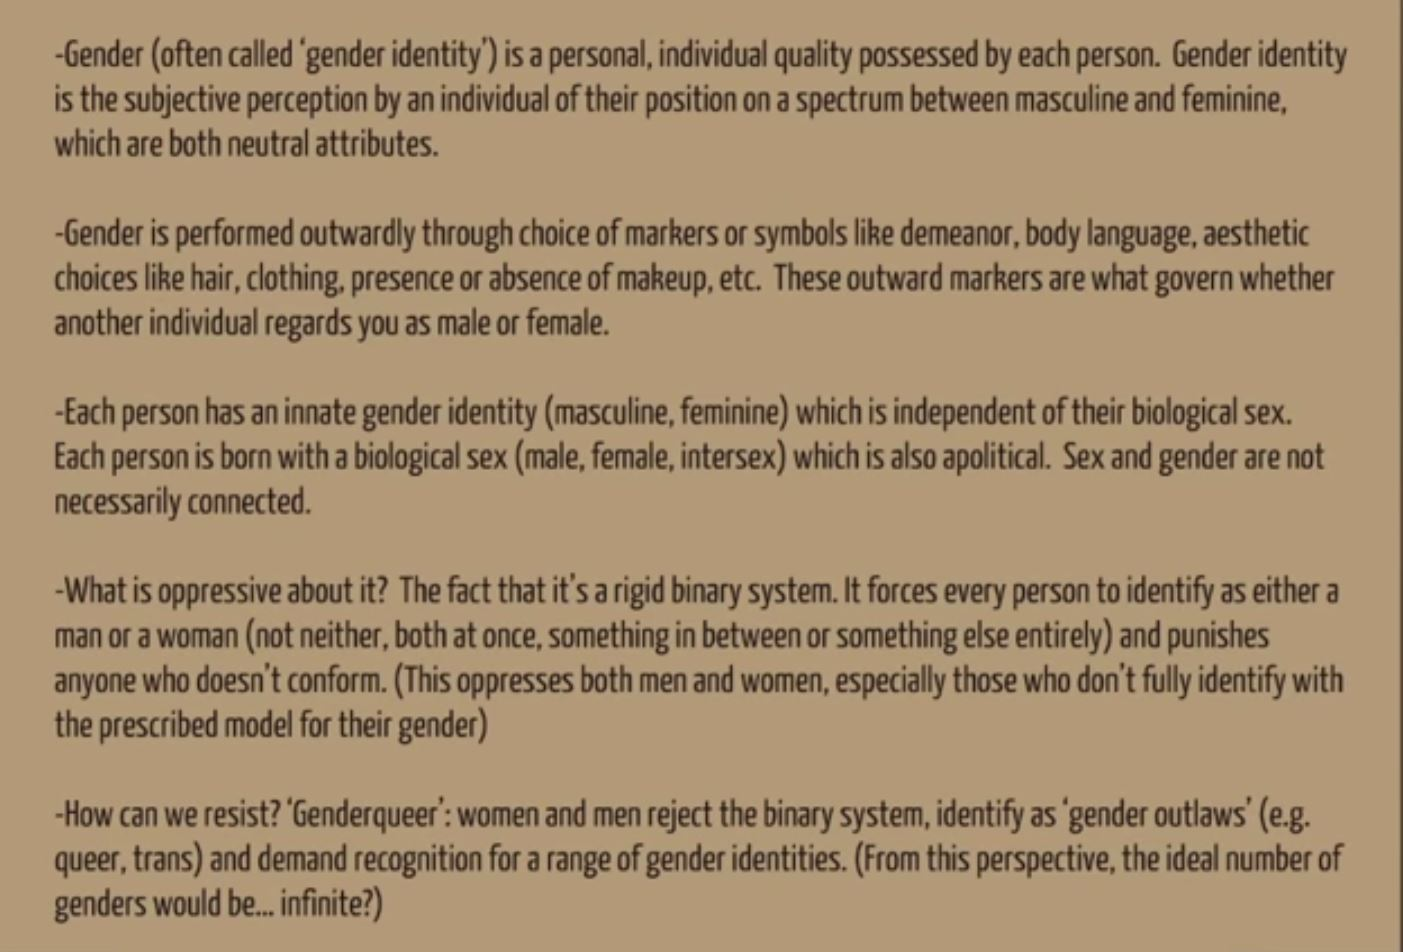 gender identity essay gender identity pictures videos breaking  women radical feminism archives deep green resistance endofgender1 jpg the difference between sexual practice and identity essay